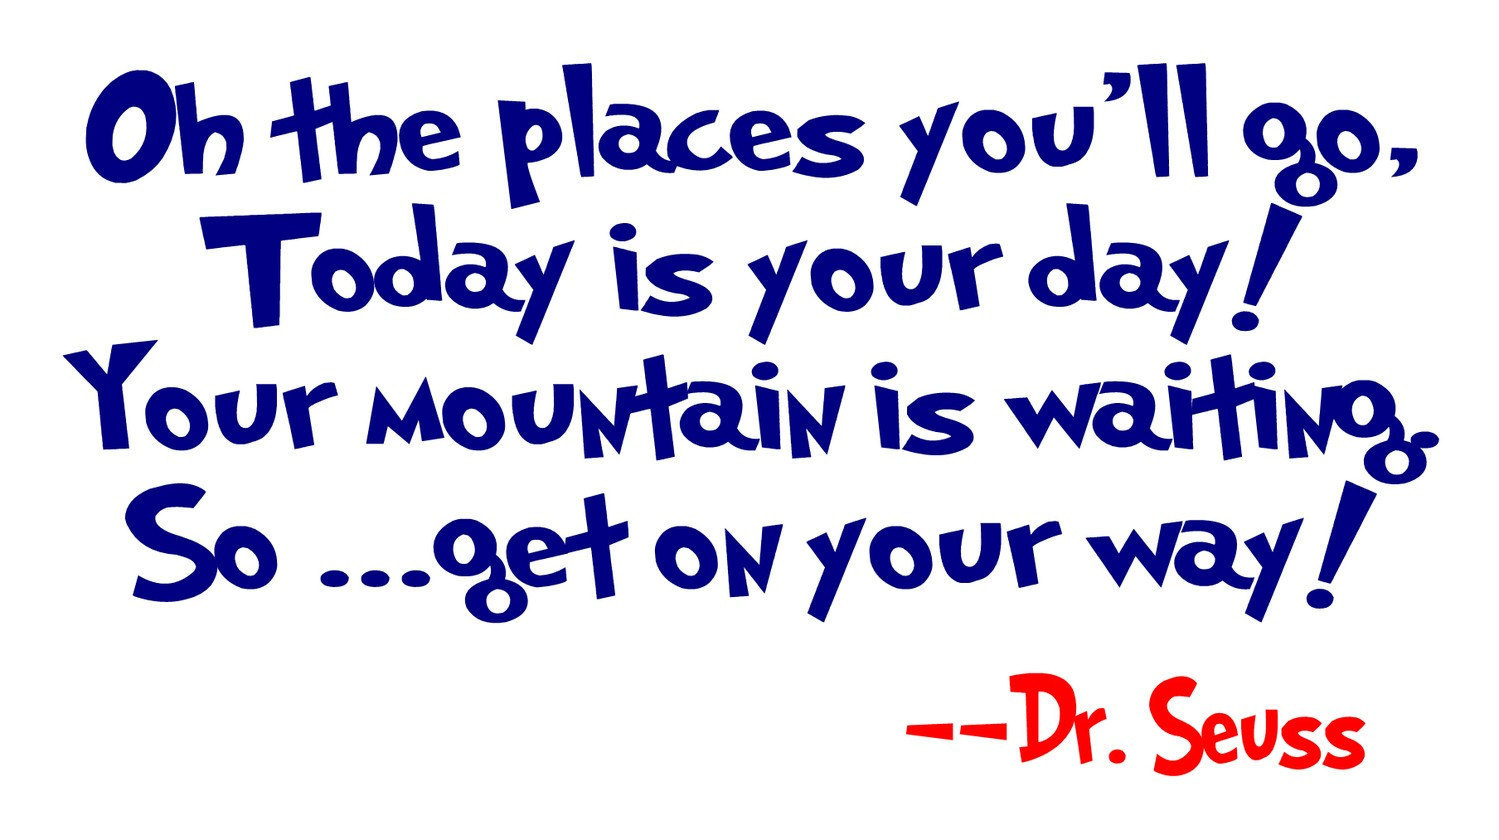 Graduation Quotes Tumbler For Friends Funny Dr Seuss 2014